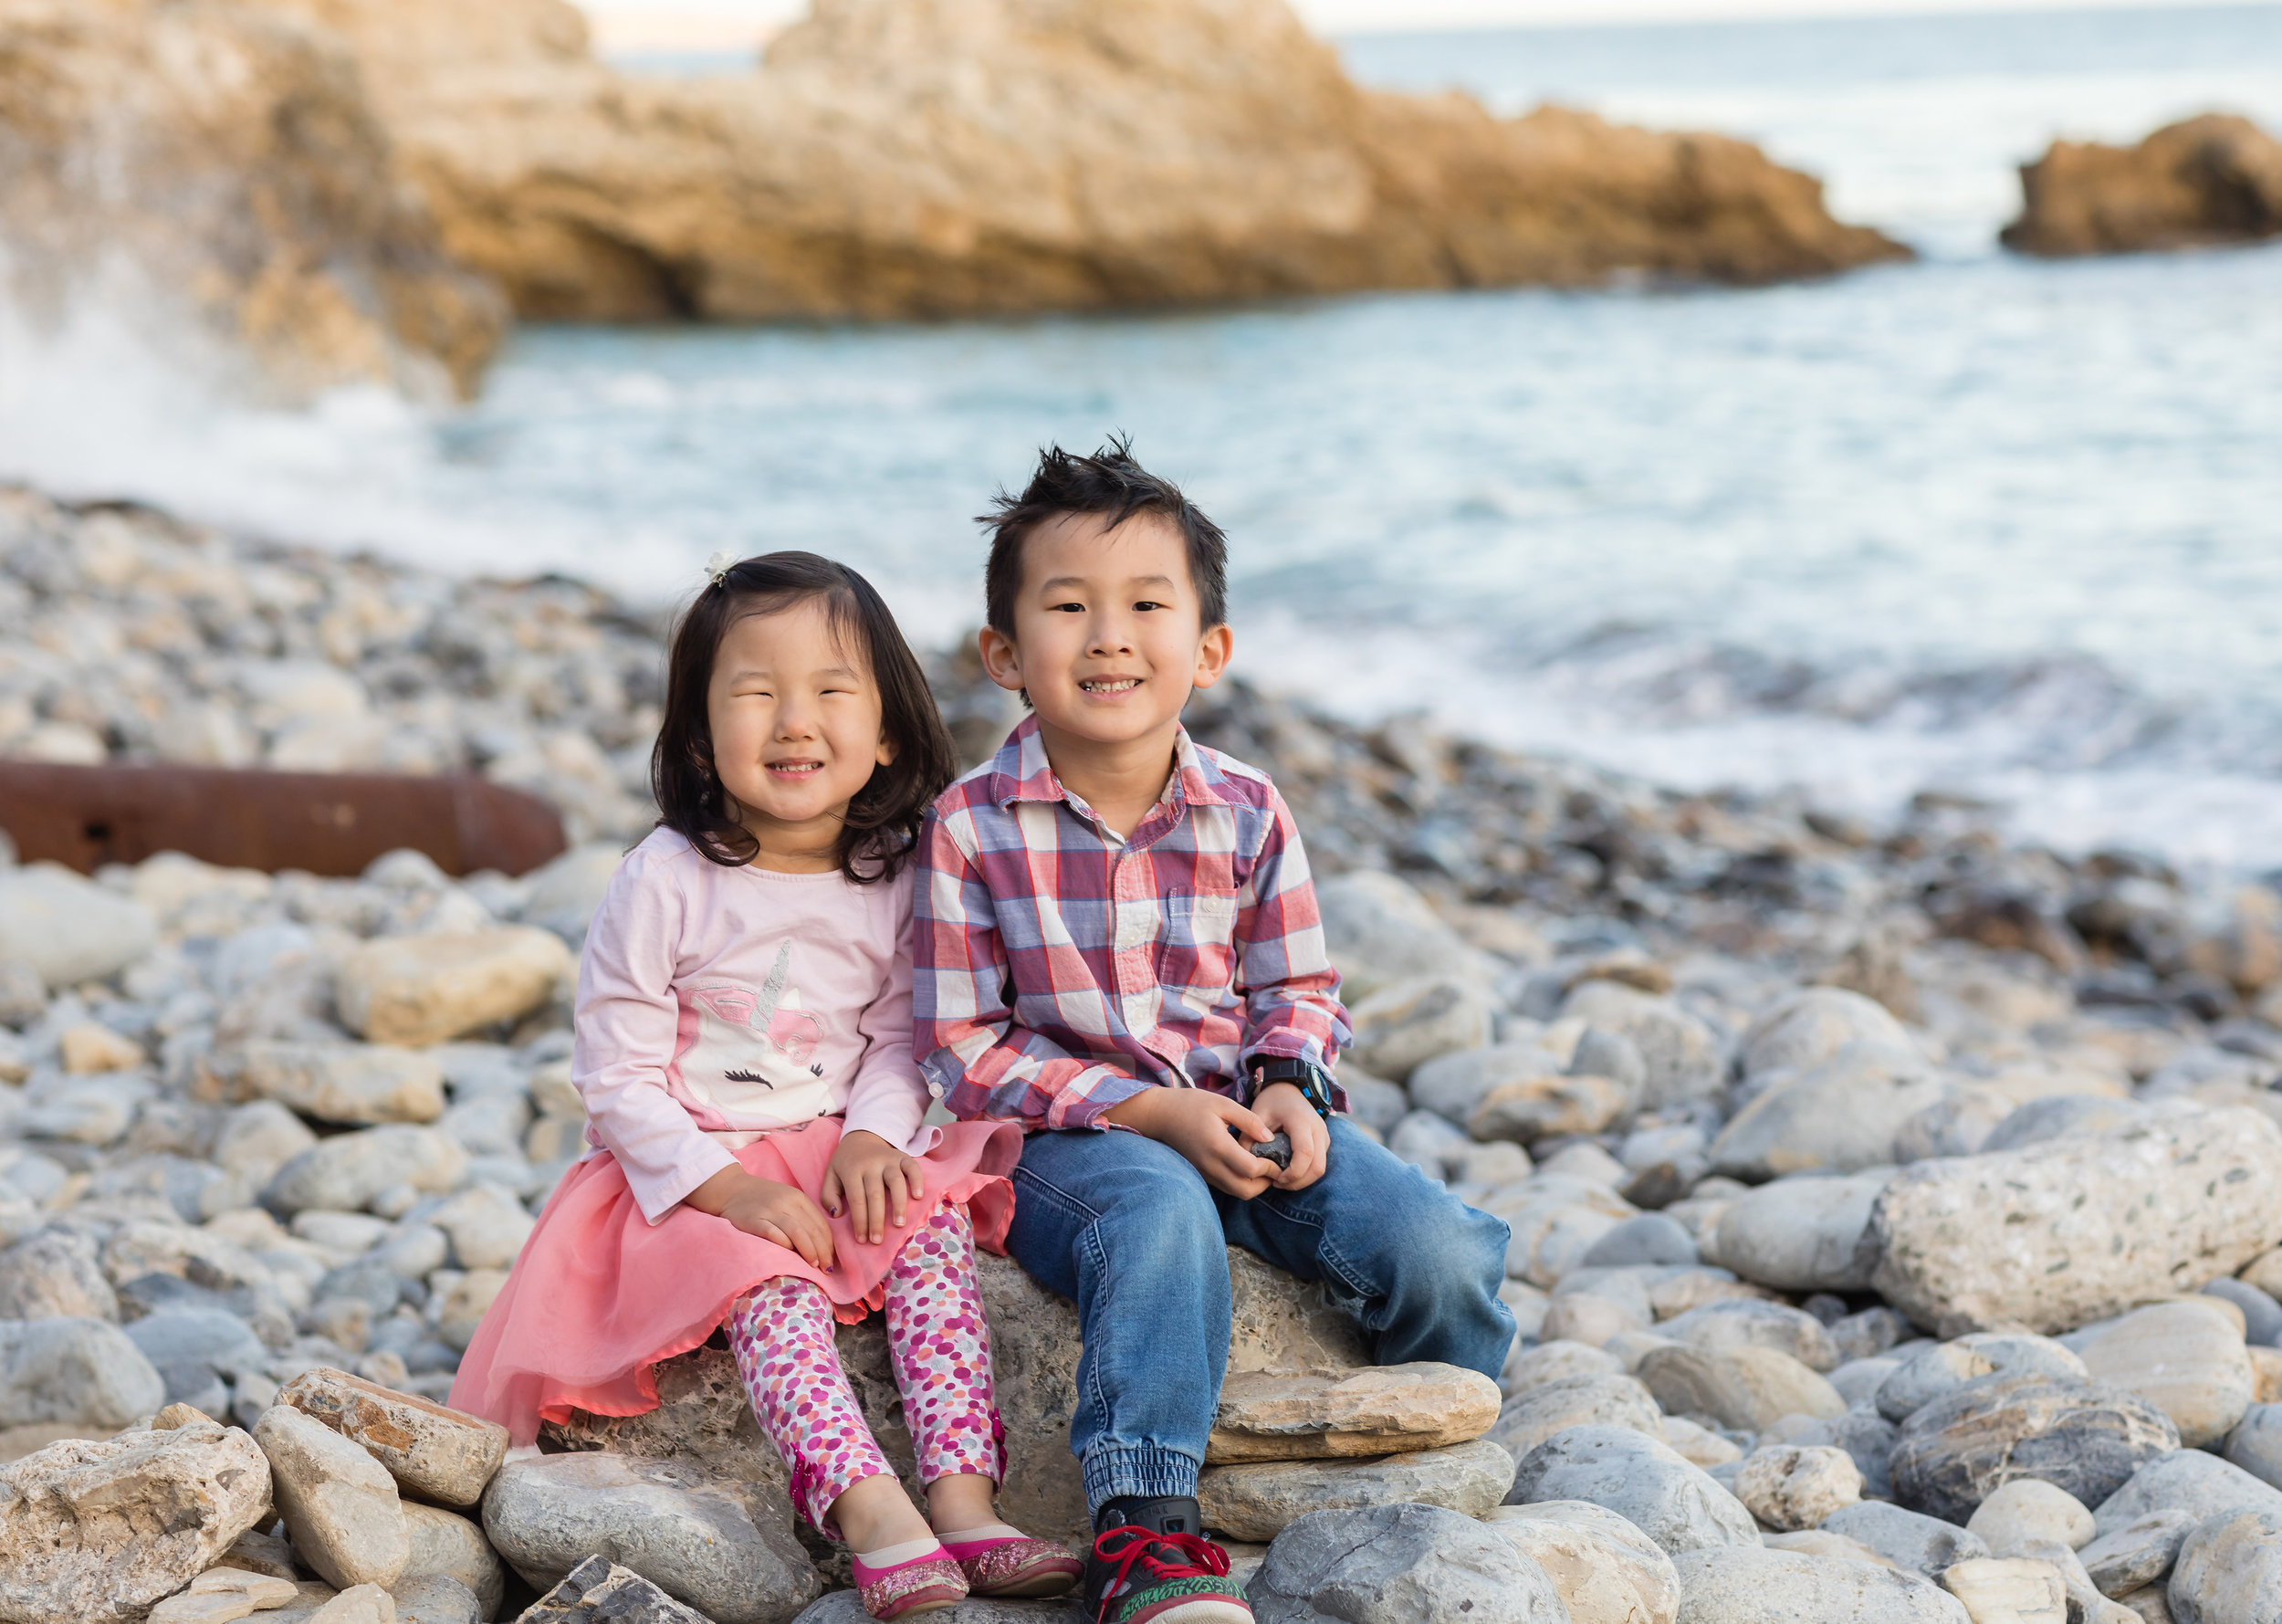 Cute kid portraits at the beach.jpg